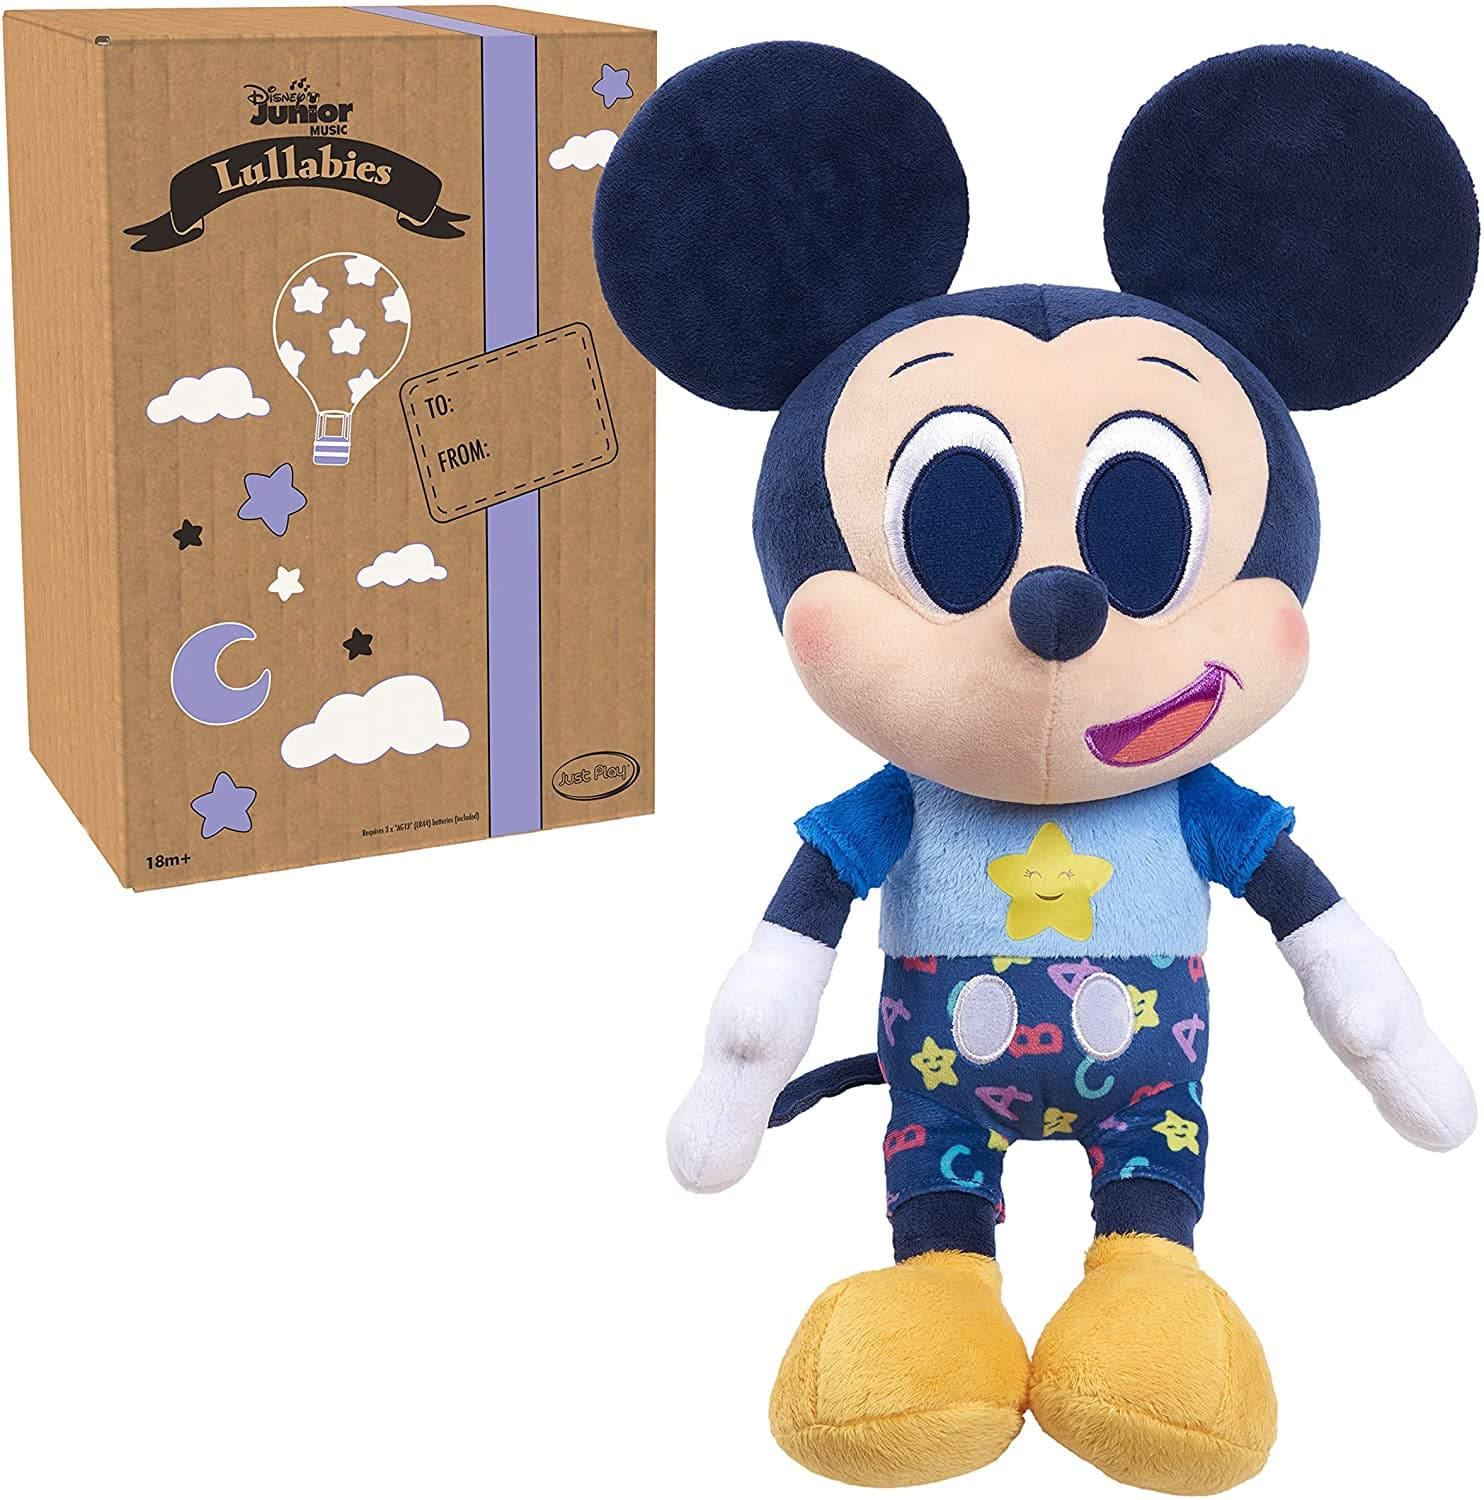 Disney Junior Music Lullabies Bedtime Plush w/ Sounds (Mickey Mouse) $9.60 + Free Shipping w/ Amazon Prime or Orders $25+